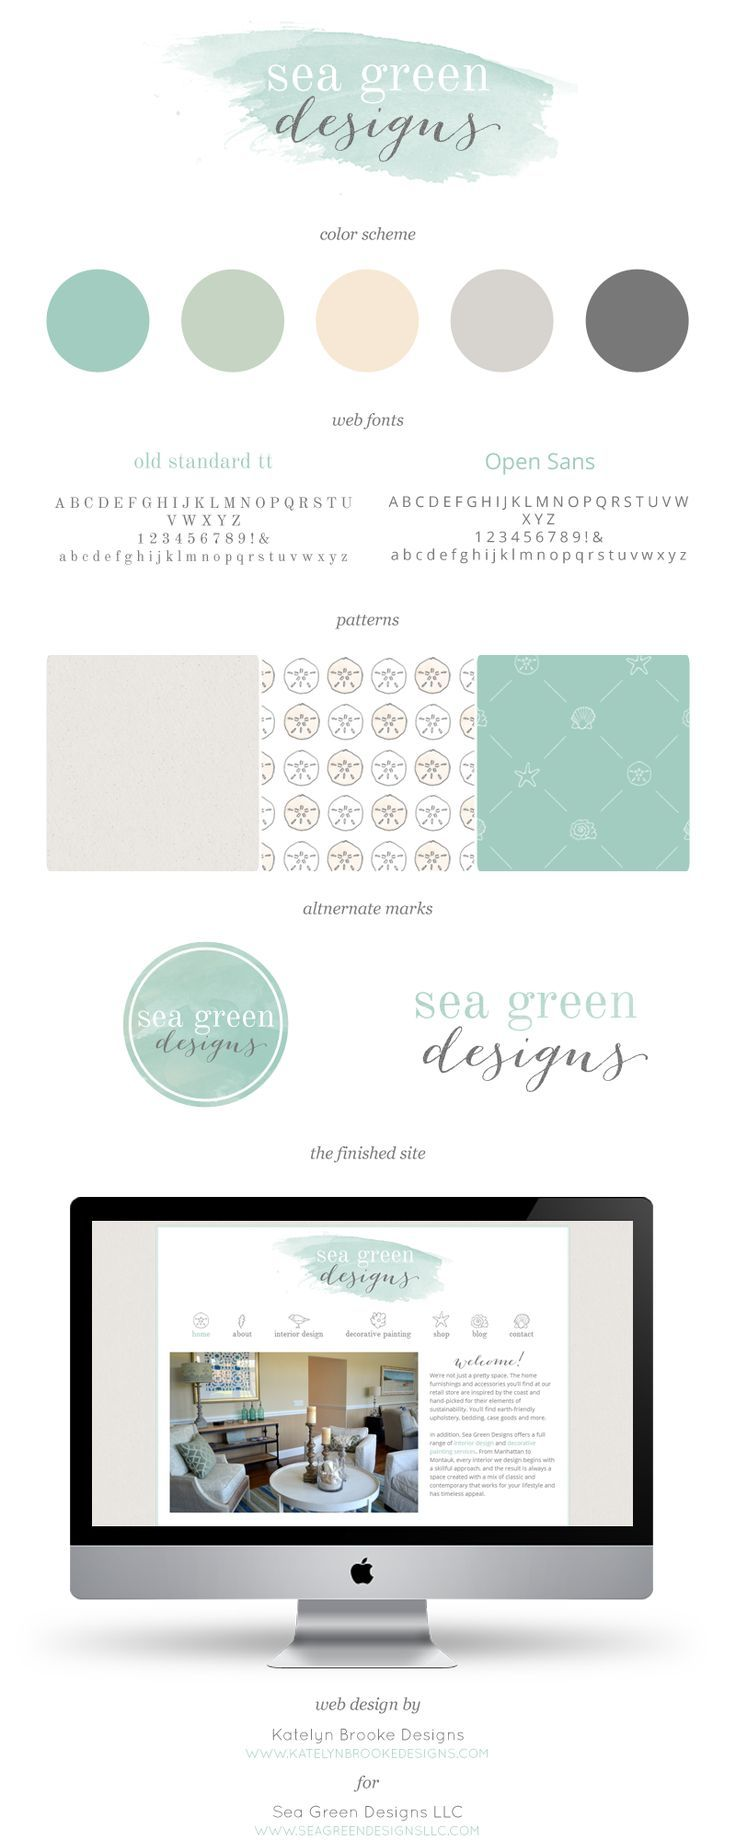 Sea Green Designs branding and WordPress website || Katelyn Brooke Designs